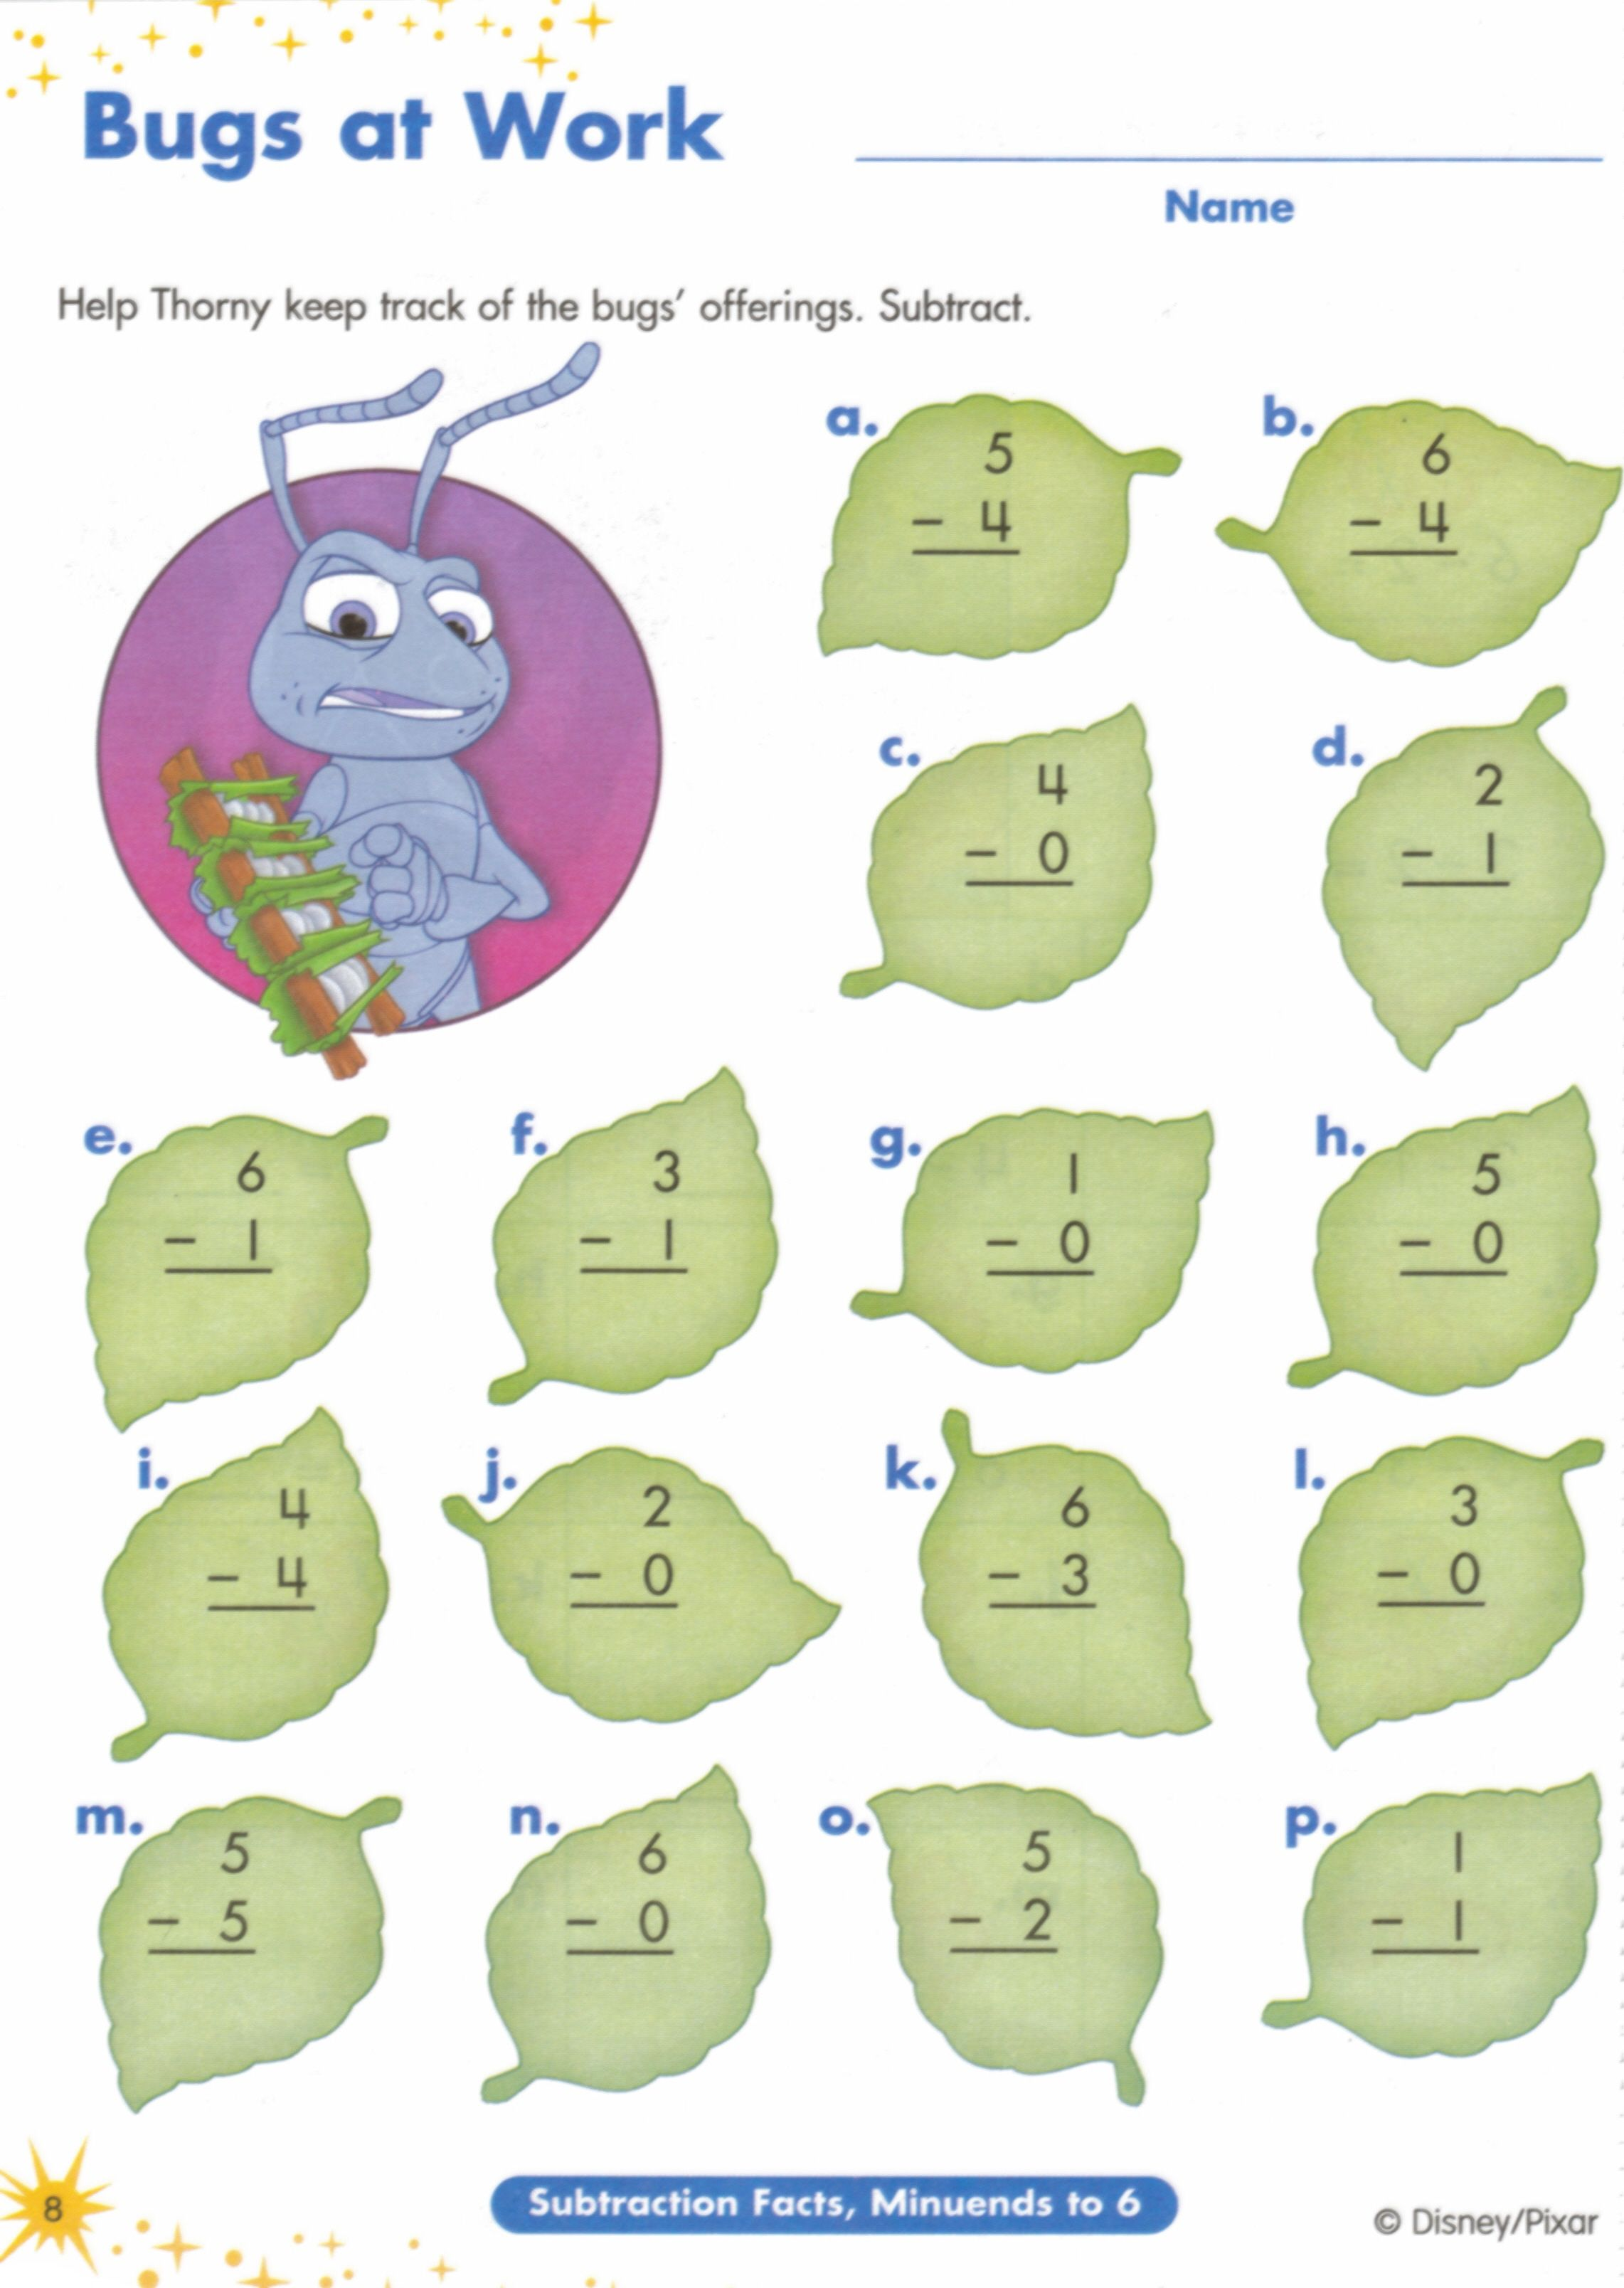 Proatmealus  Marvelous  Images About Worksheets On Pinterest  Fun Facts For Kids  With Exquisite  Images About Worksheets On Pinterest  Fun Facts For Kids Earth Day Worksheets And Jungles With Enchanting Multi Digit Addition Worksheets Also Common Core First Grade Math Worksheets In Addition Cell Organelle Research Worksheet Answers And Sorting Shapes Worksheets As Well As Geometry Worksheets Th Grade Additionally Teachers Worksheet From Pinterestcom With Proatmealus  Exquisite  Images About Worksheets On Pinterest  Fun Facts For Kids  With Enchanting  Images About Worksheets On Pinterest  Fun Facts For Kids Earth Day Worksheets And Jungles And Marvelous Multi Digit Addition Worksheets Also Common Core First Grade Math Worksheets In Addition Cell Organelle Research Worksheet Answers From Pinterestcom